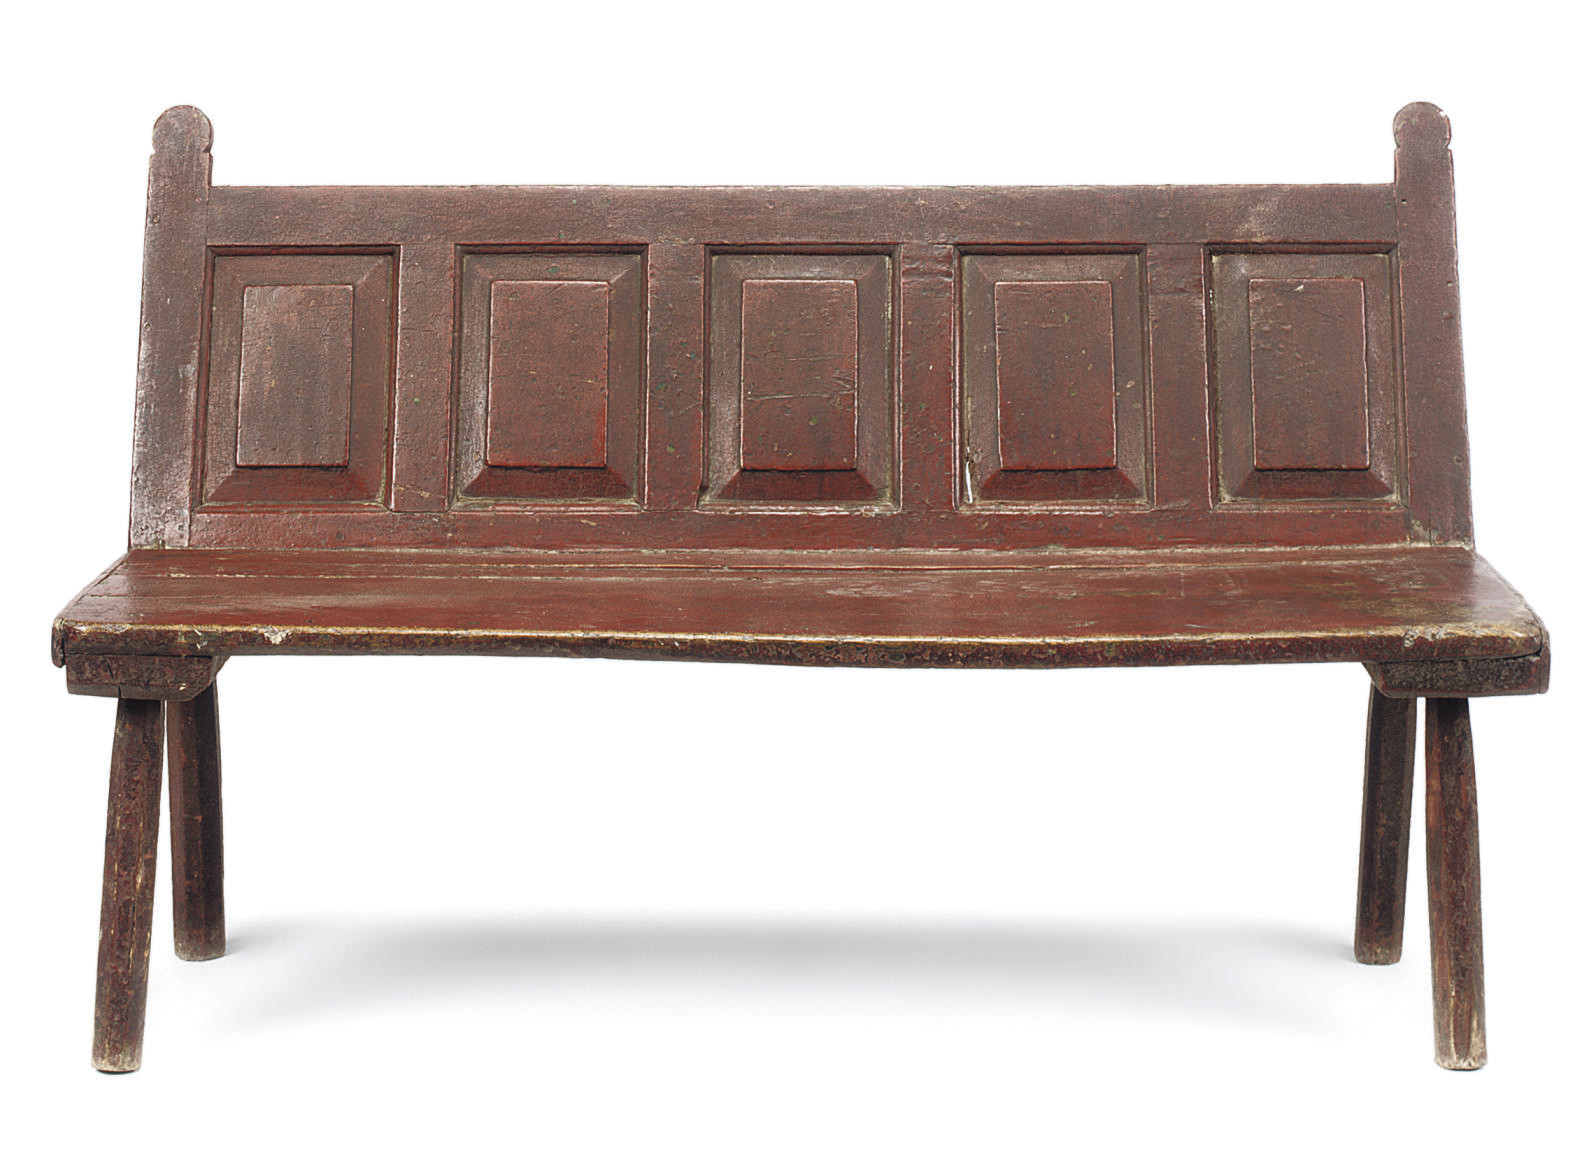 A GEORGE III RED-PAINTED BENCH